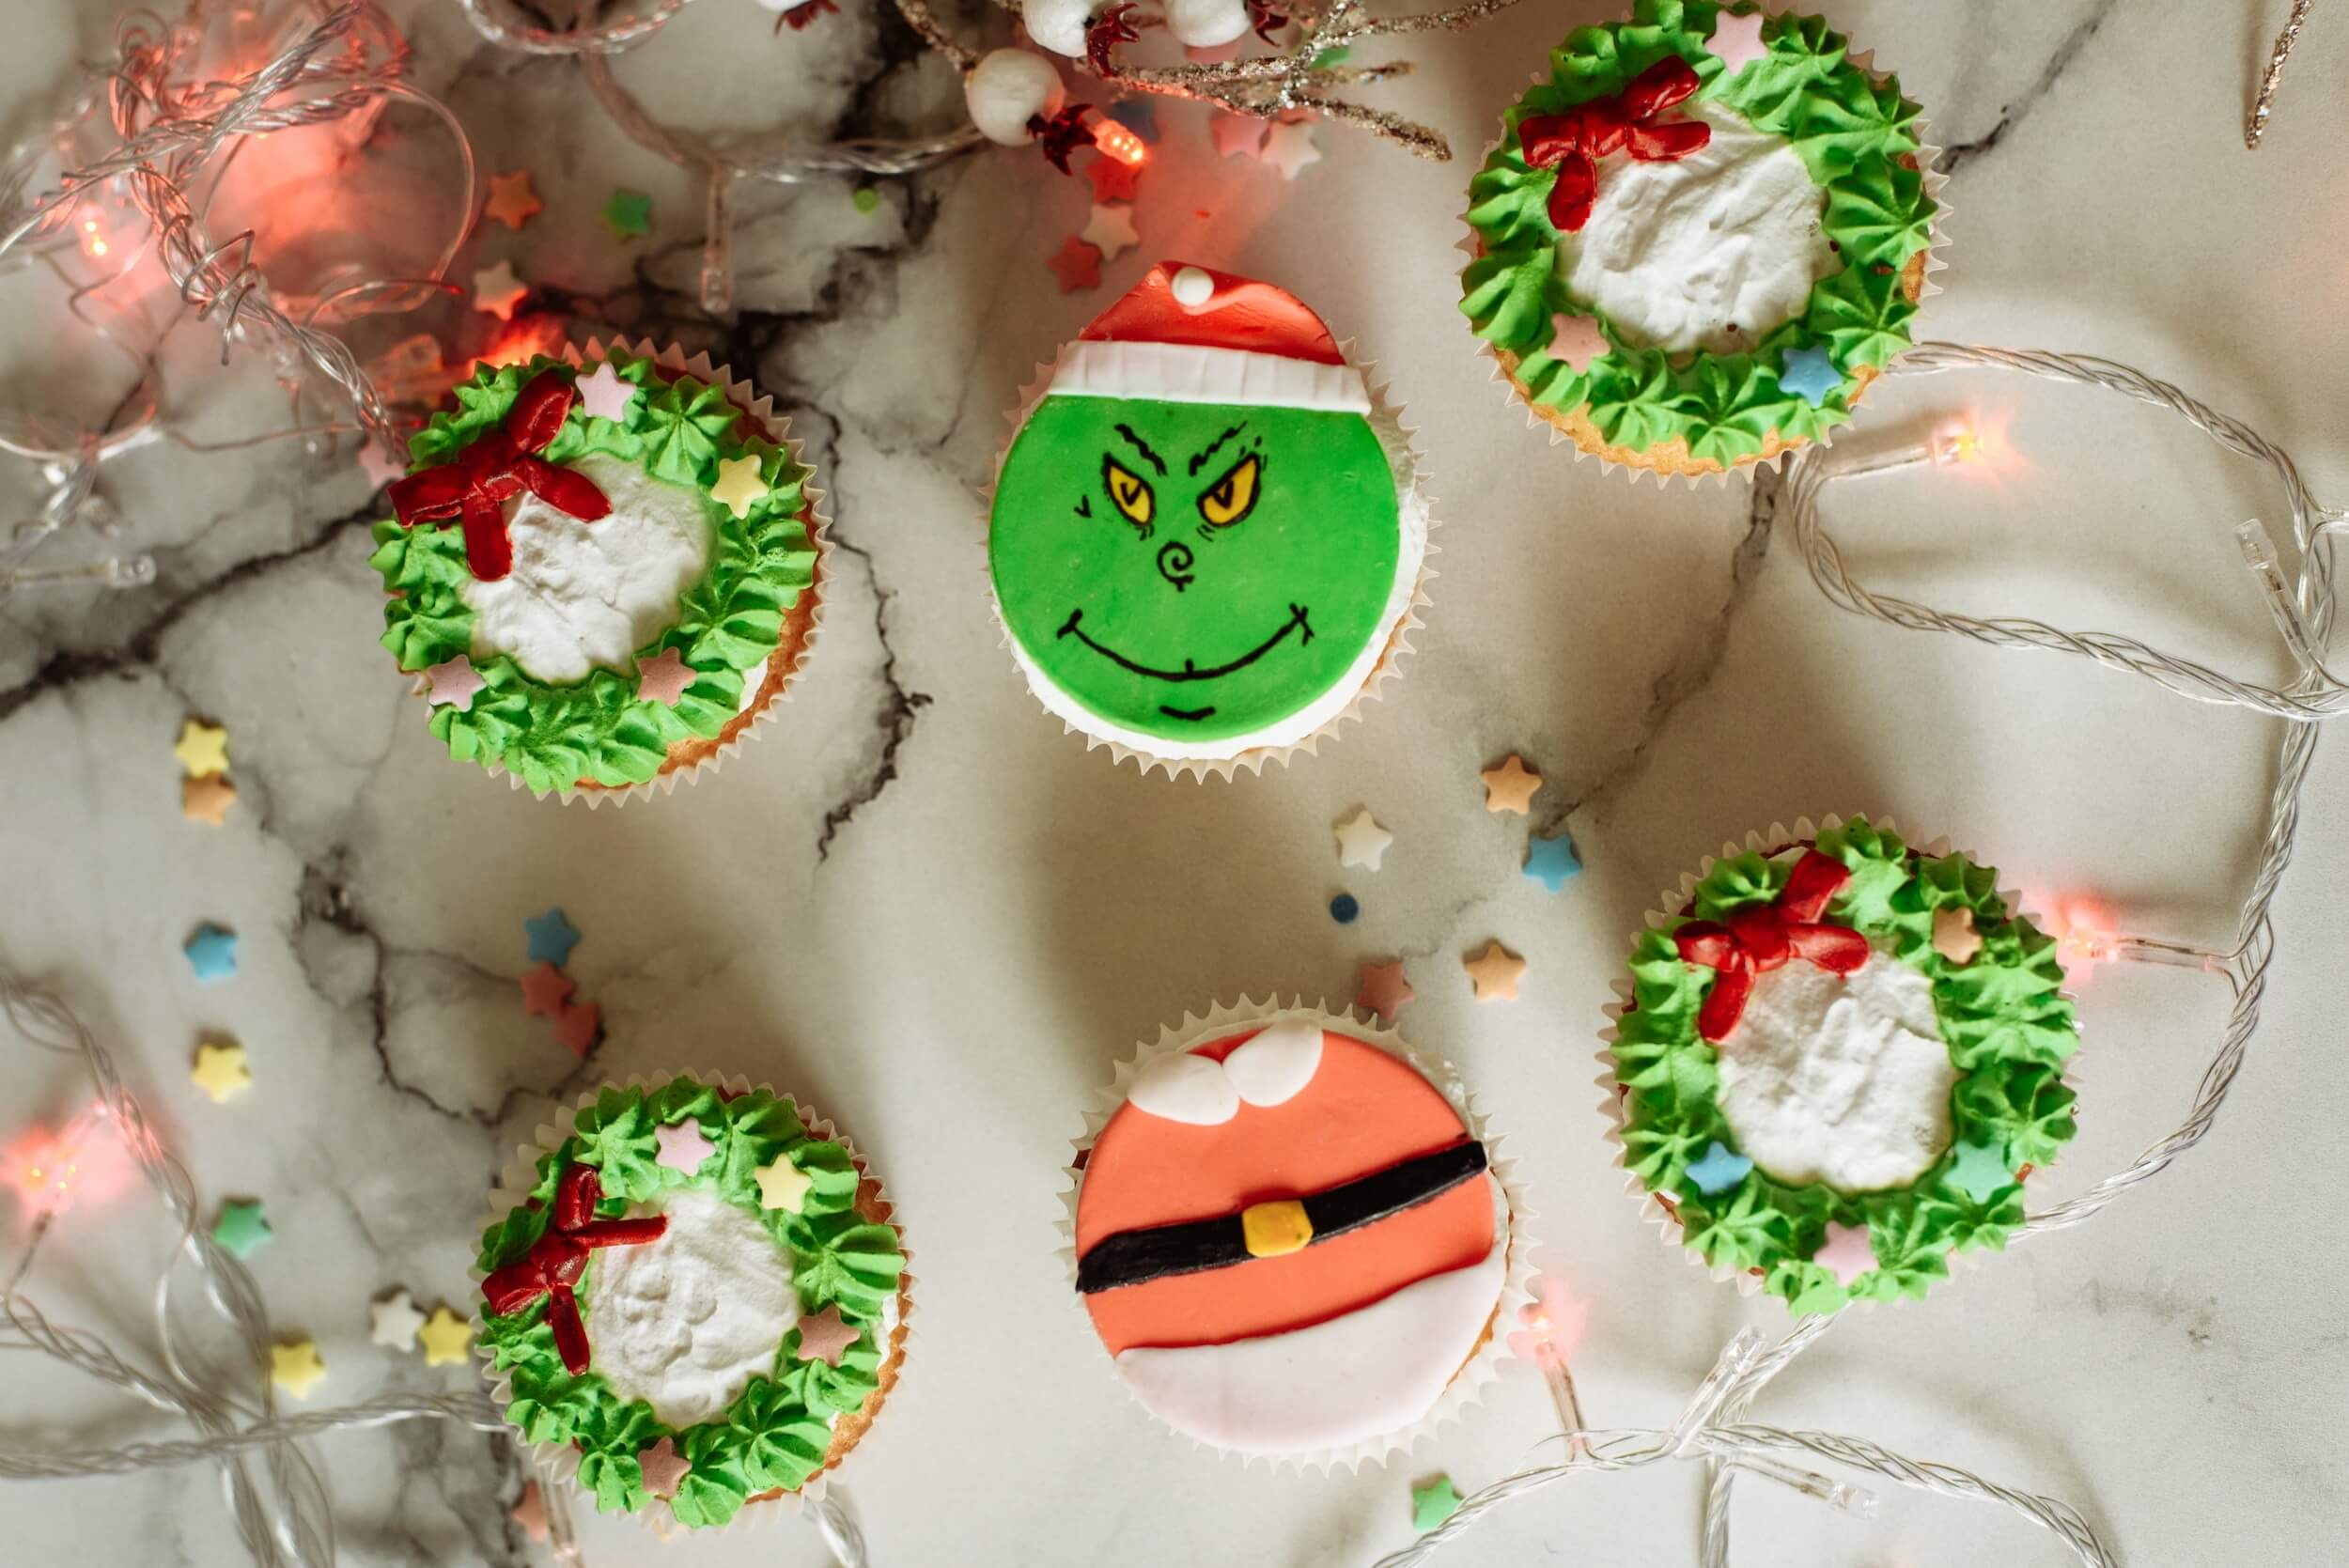 Christmas cakes in all colors, on of them is decorated as Grinch's face